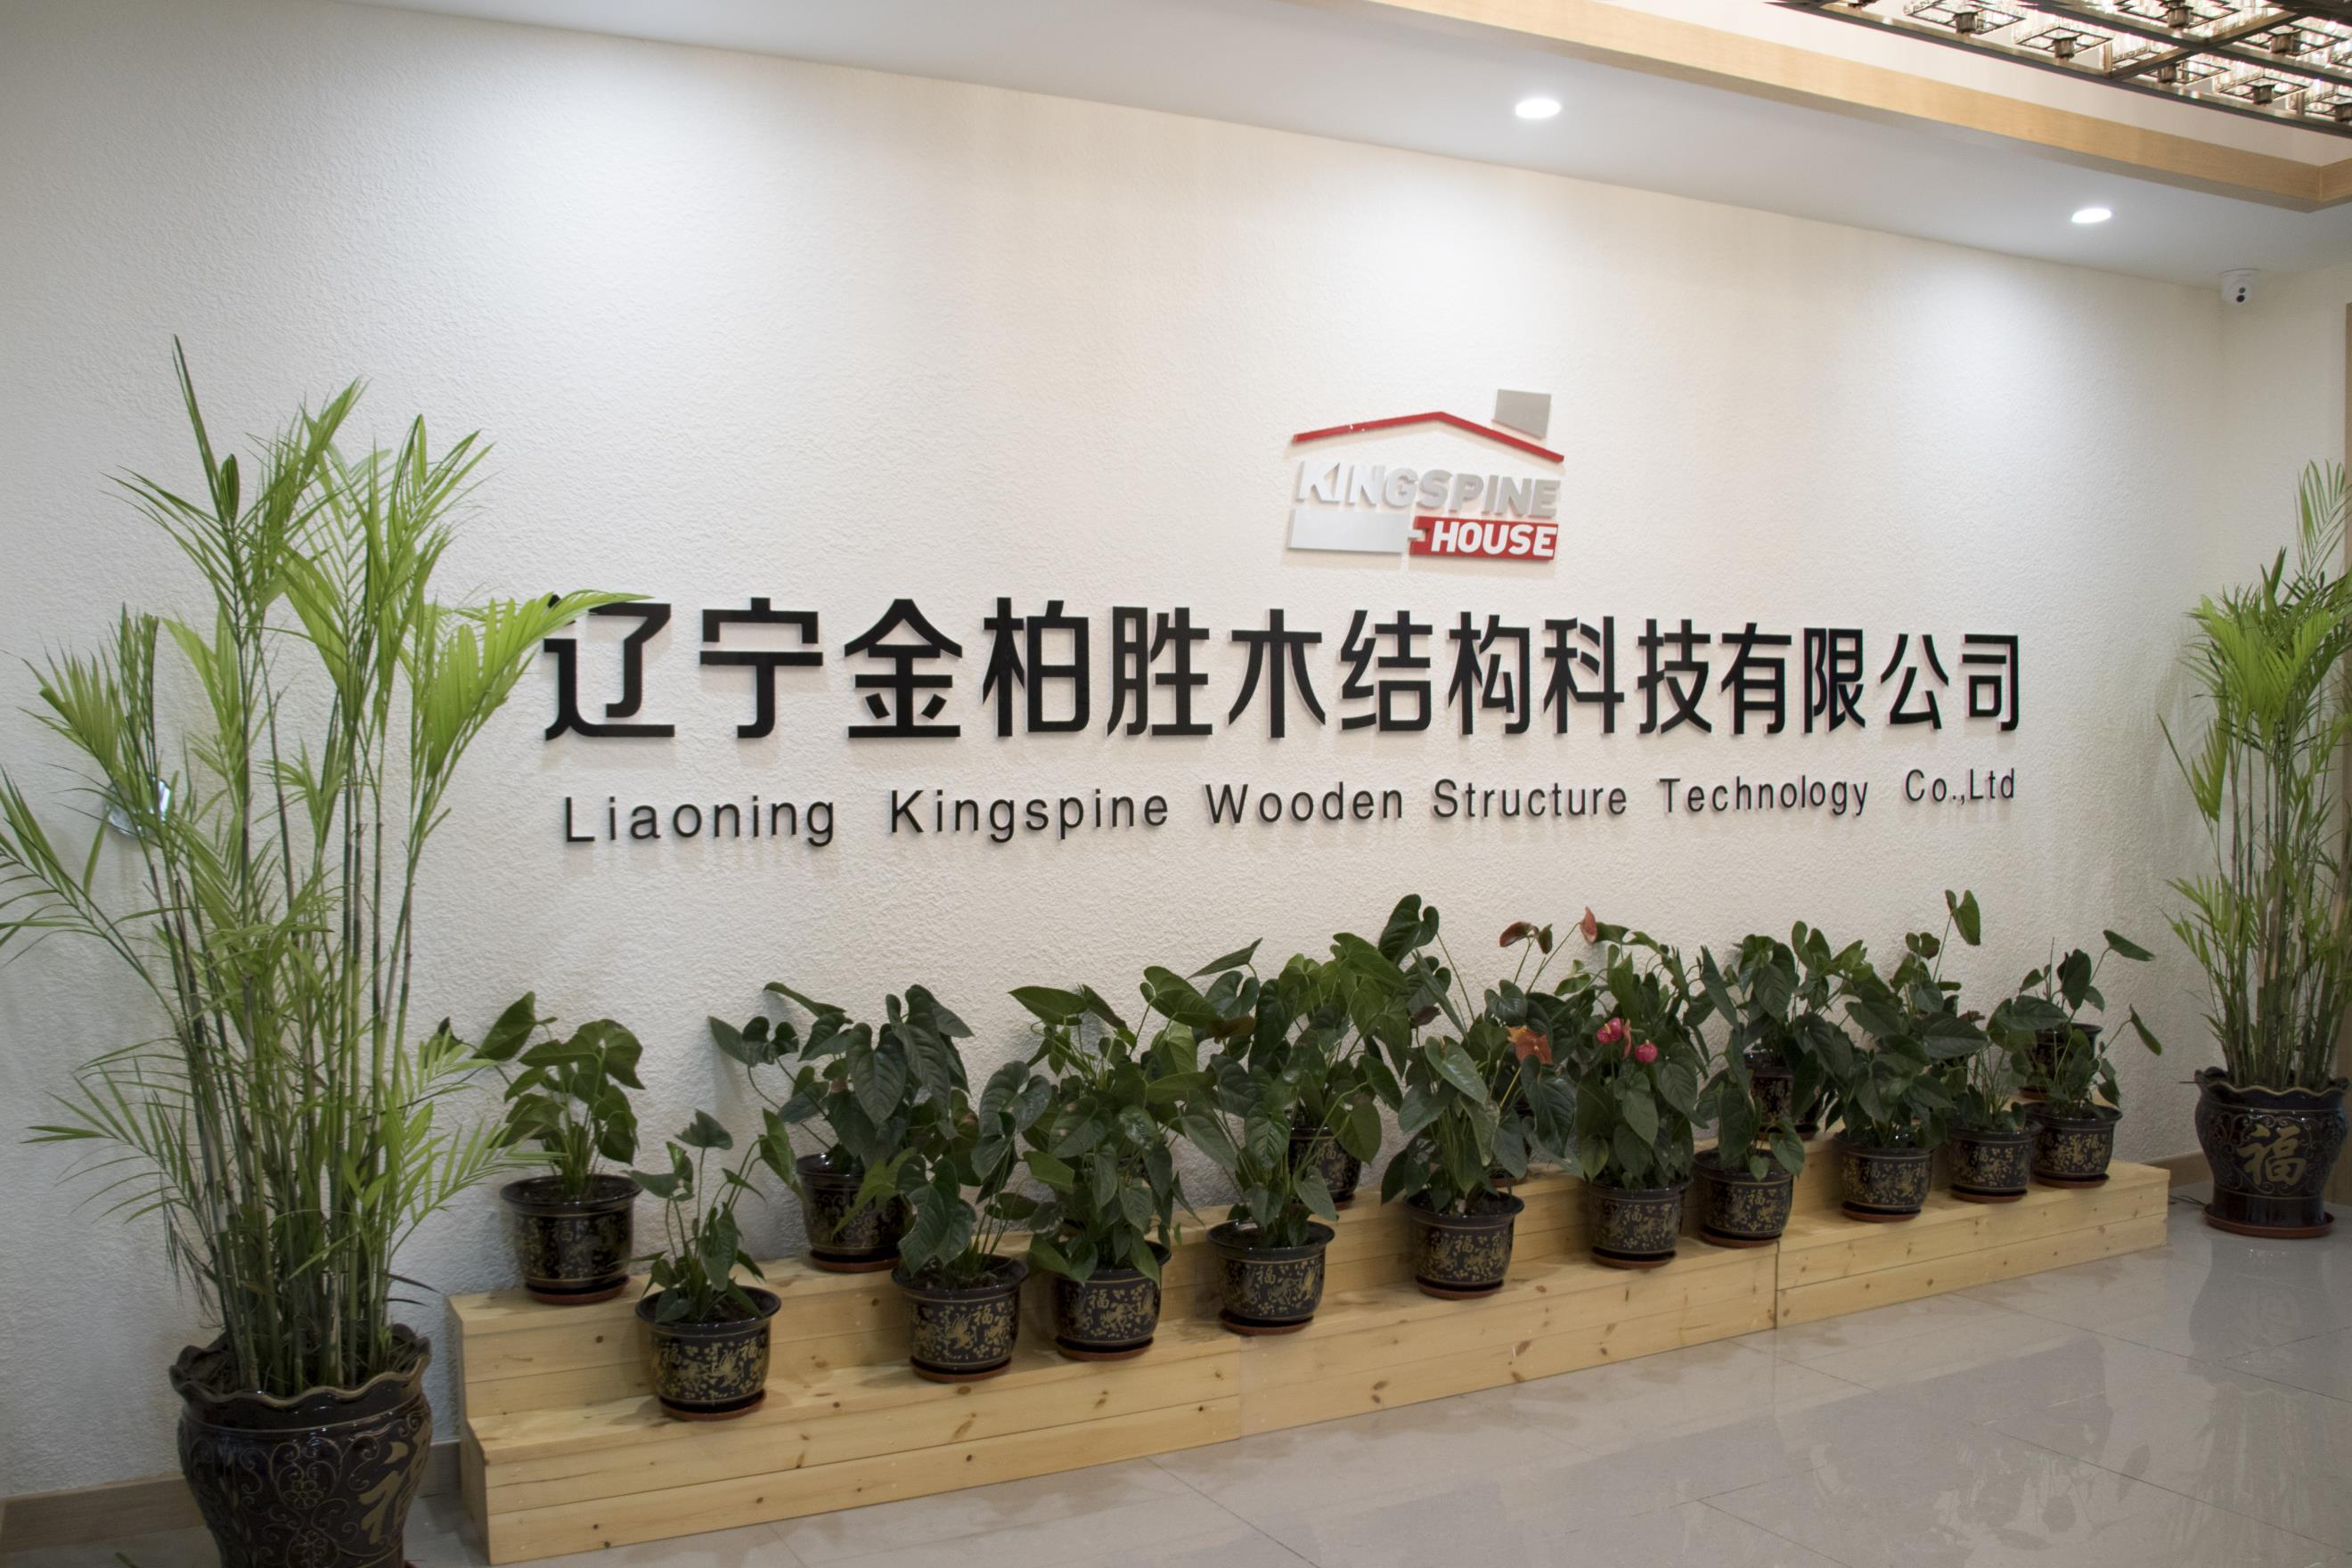 Liaoning Kingspine Wooden Structure Co., Ltd.